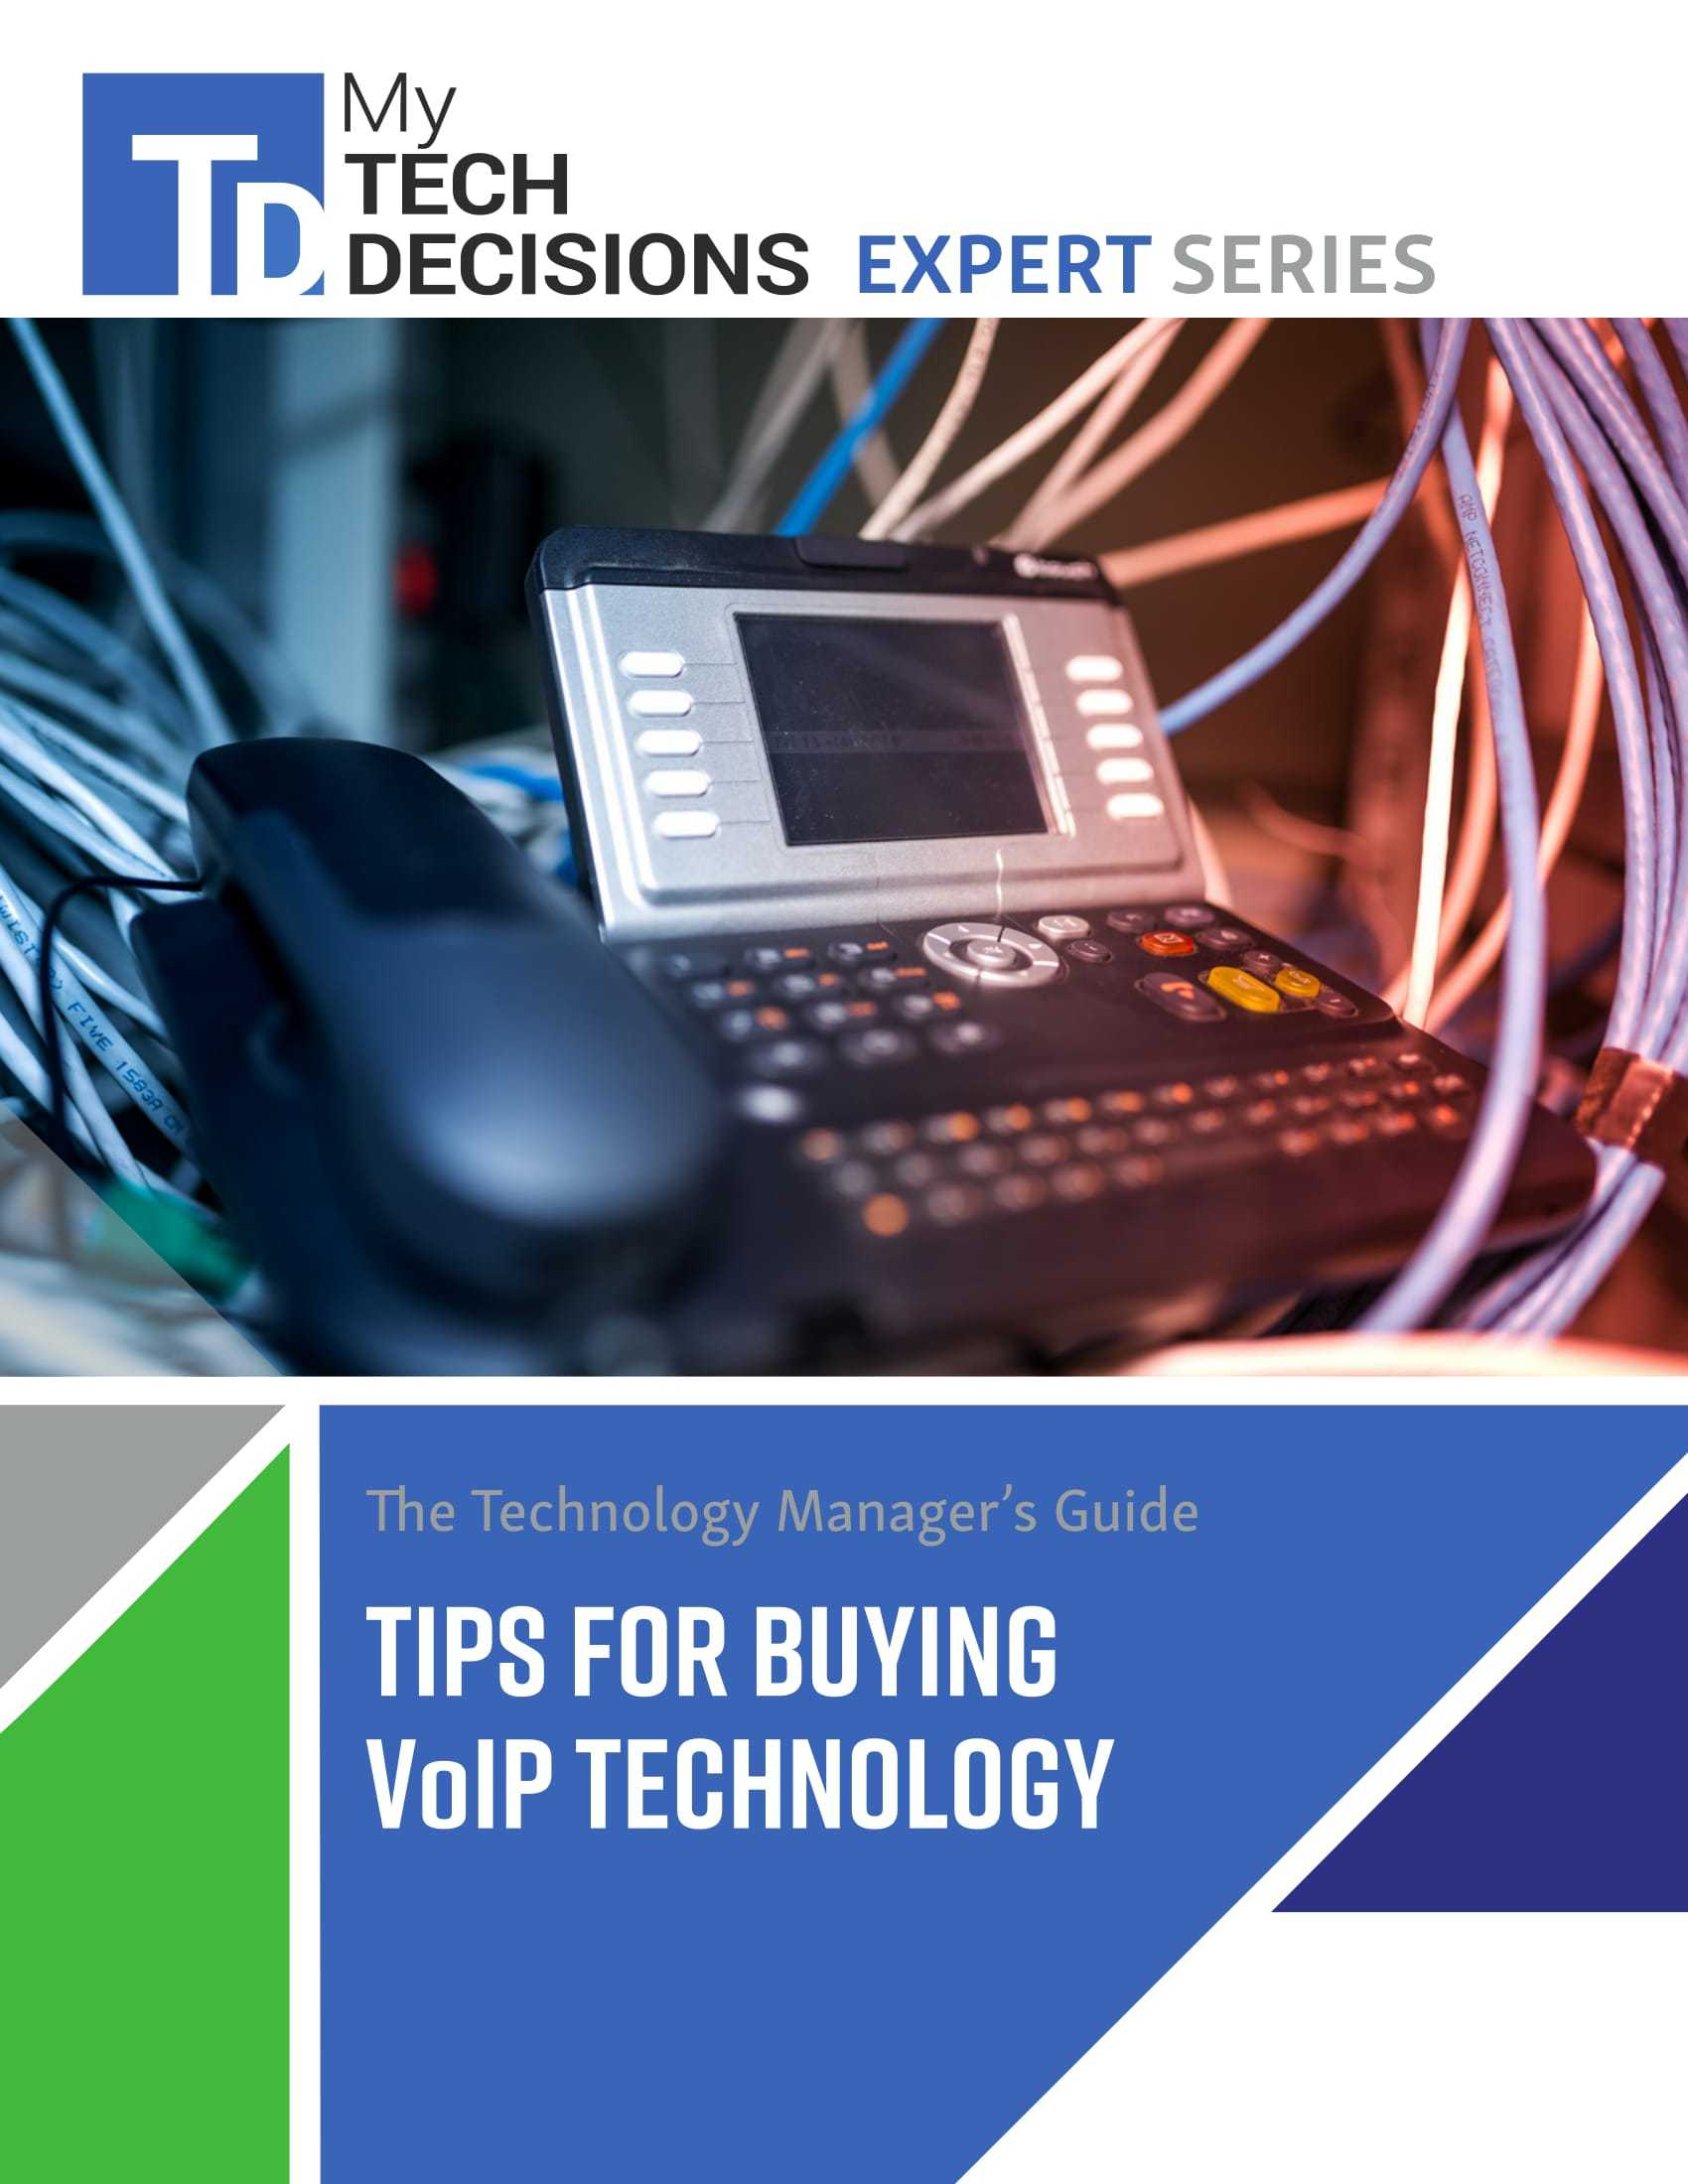 The Technology Manager's Guide: Tips for Buying VoIP Technology